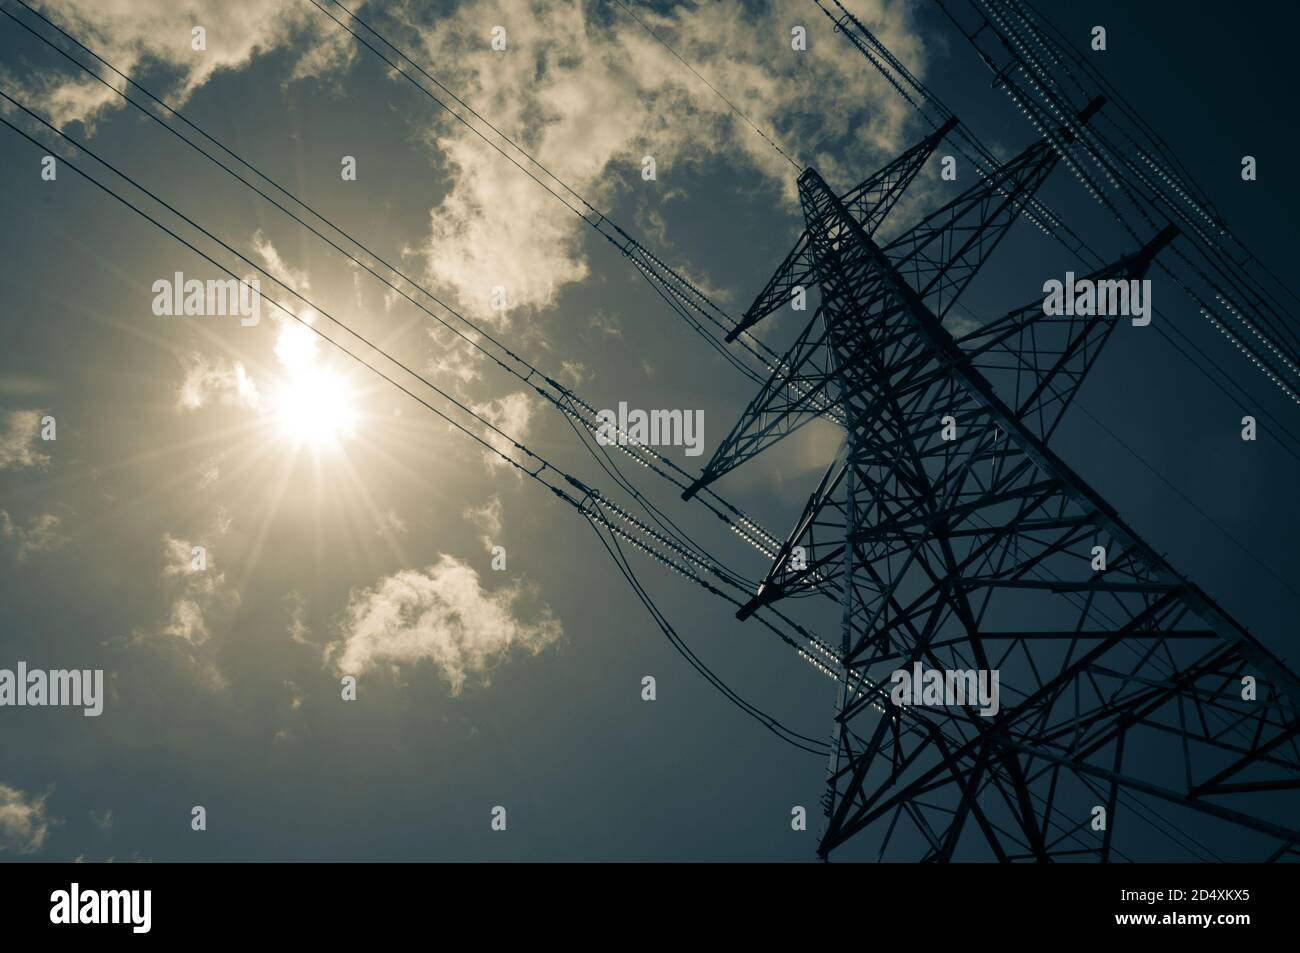 An electricity pylon stands tall in the hot summer sun with a few wispy clouds. Solar Power concept. Stock Photo